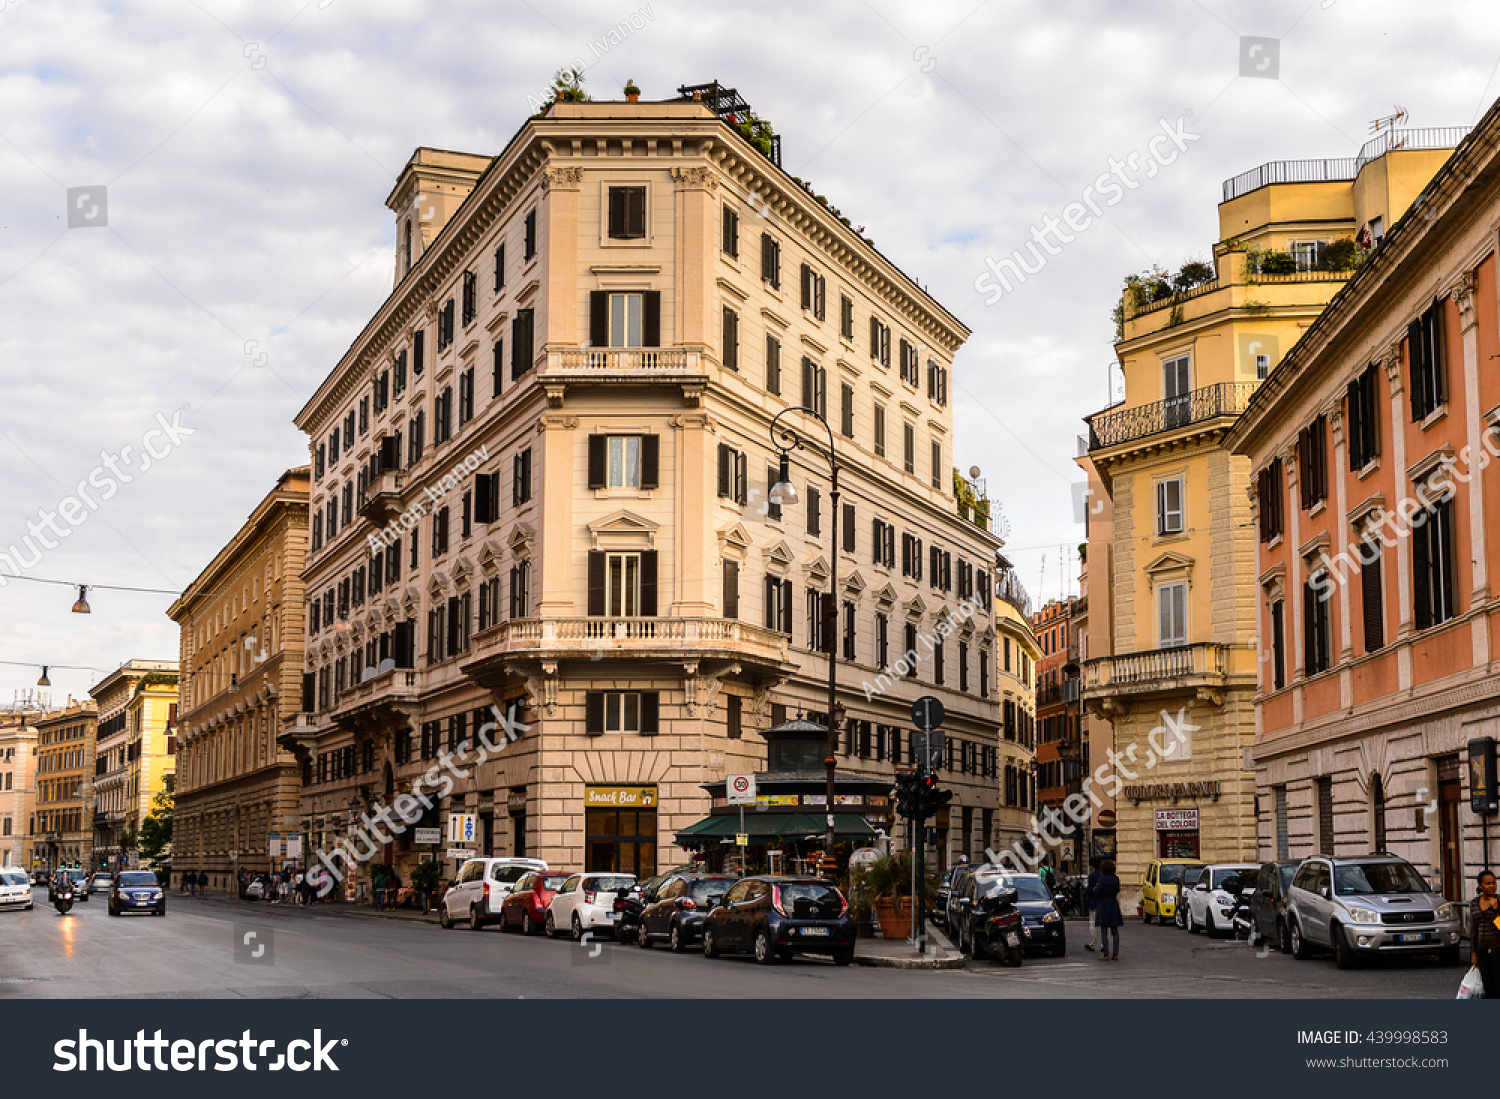 Rome Italy May 7 2016 Architecture Stock Photo 439998583